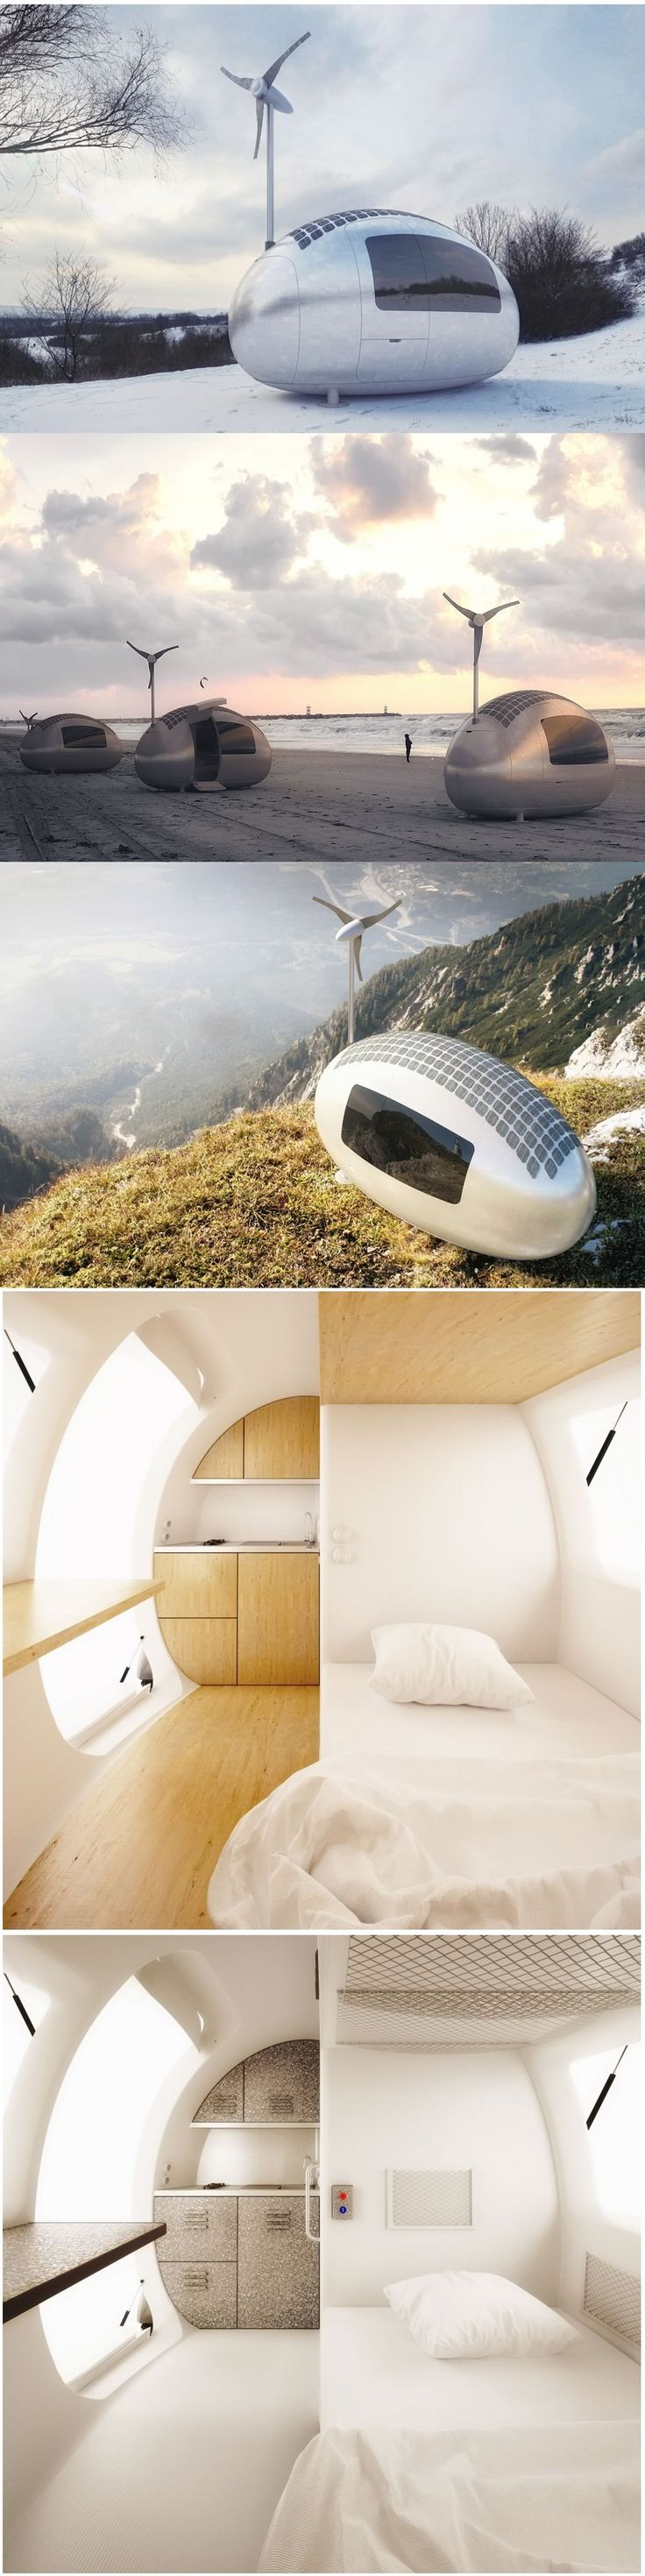 ECOCAPSULE - Dwelling with the spirit of freedom